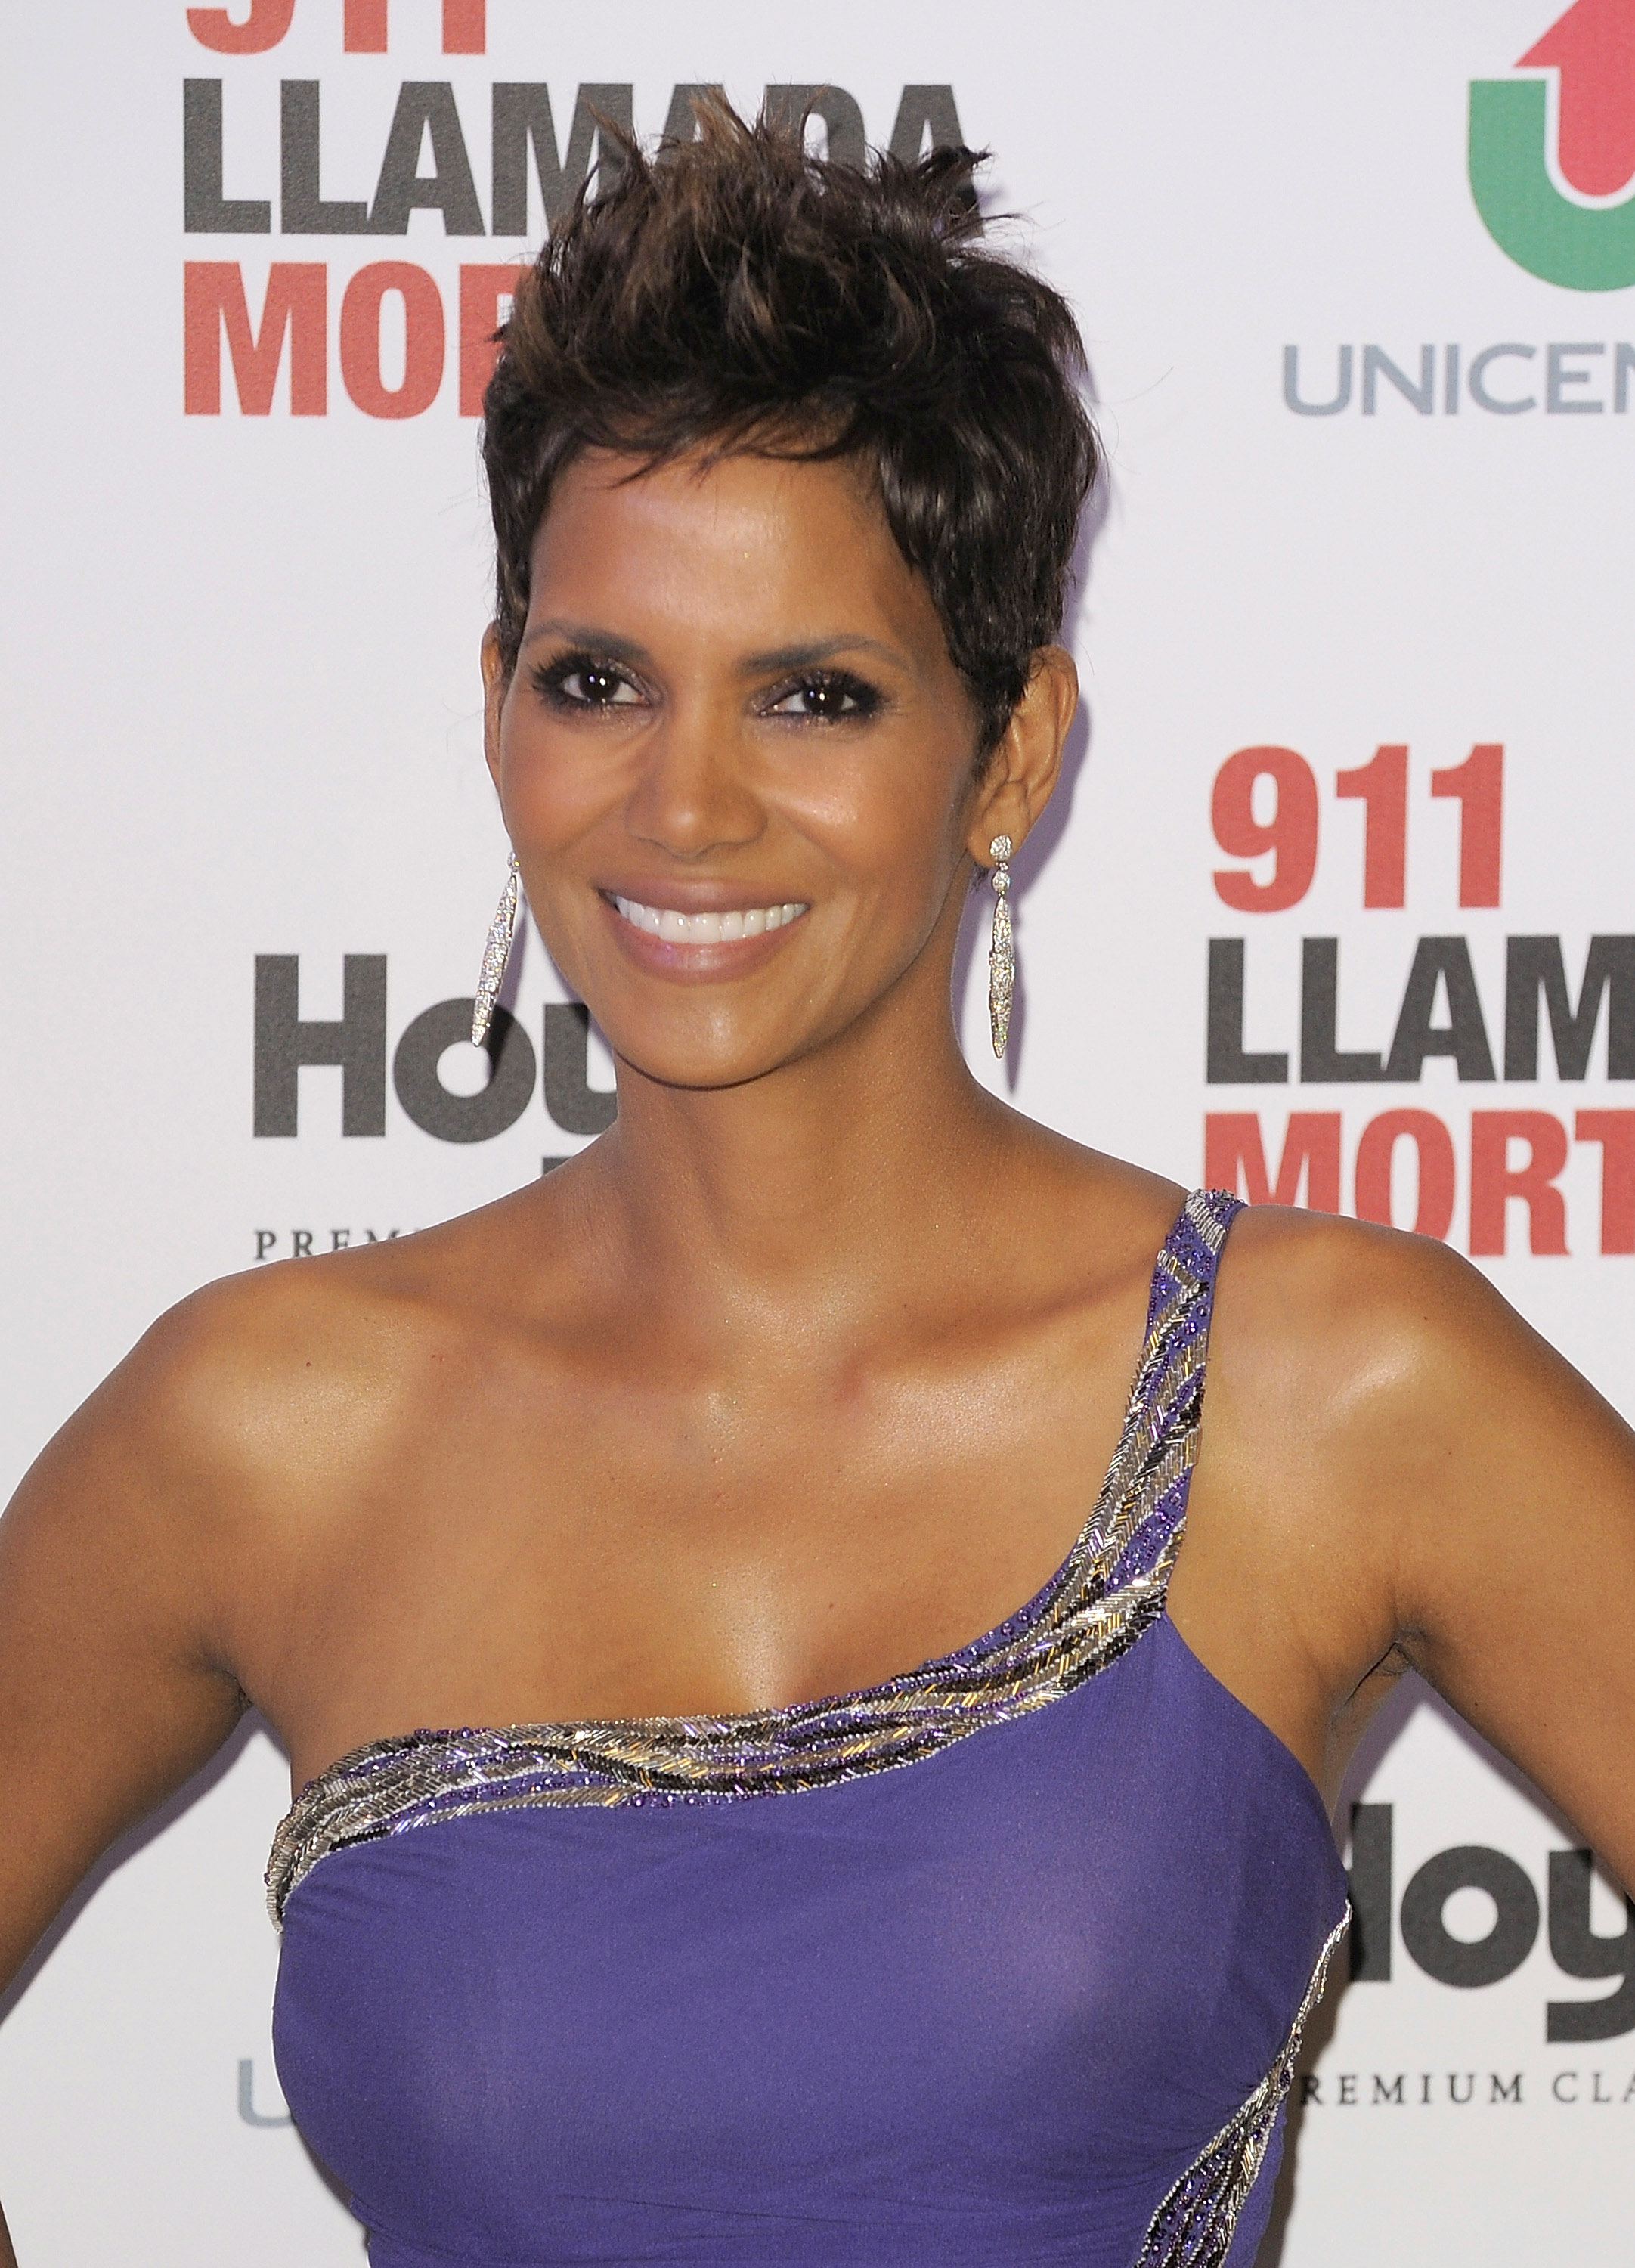 Halle Berry attends 'The Call' Premiere in Buenos Aires